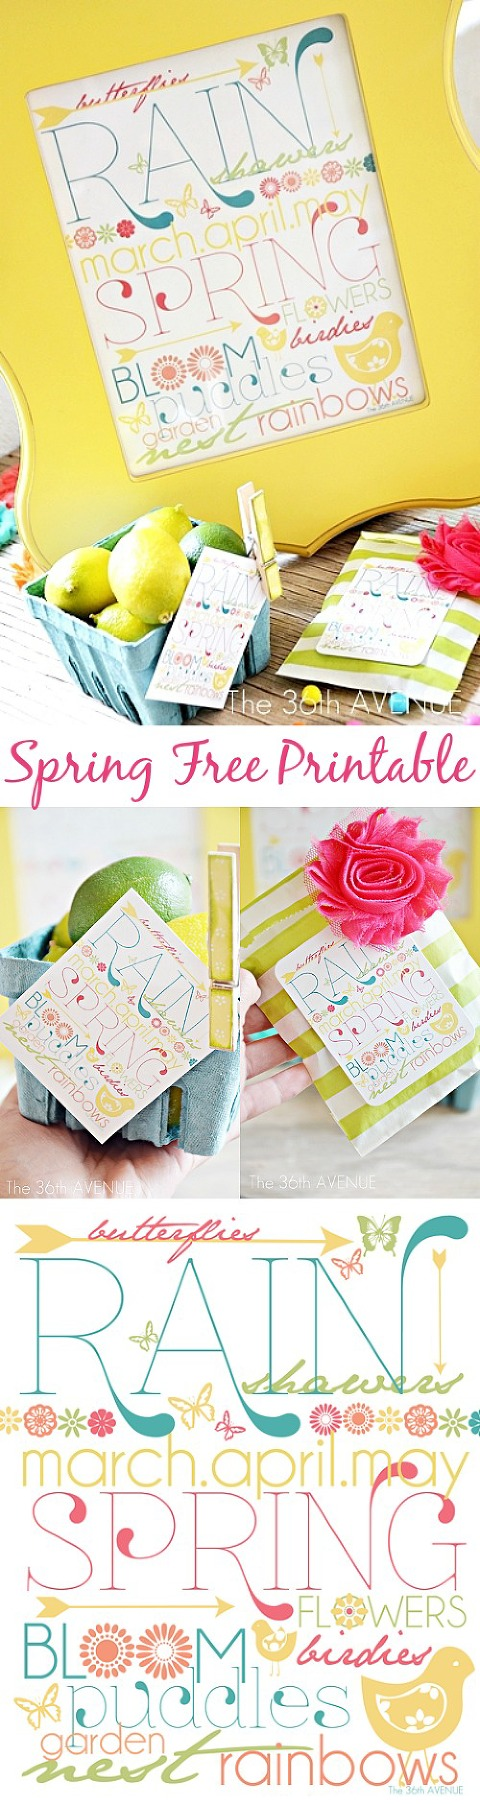 Spring printable from the 36th avenue